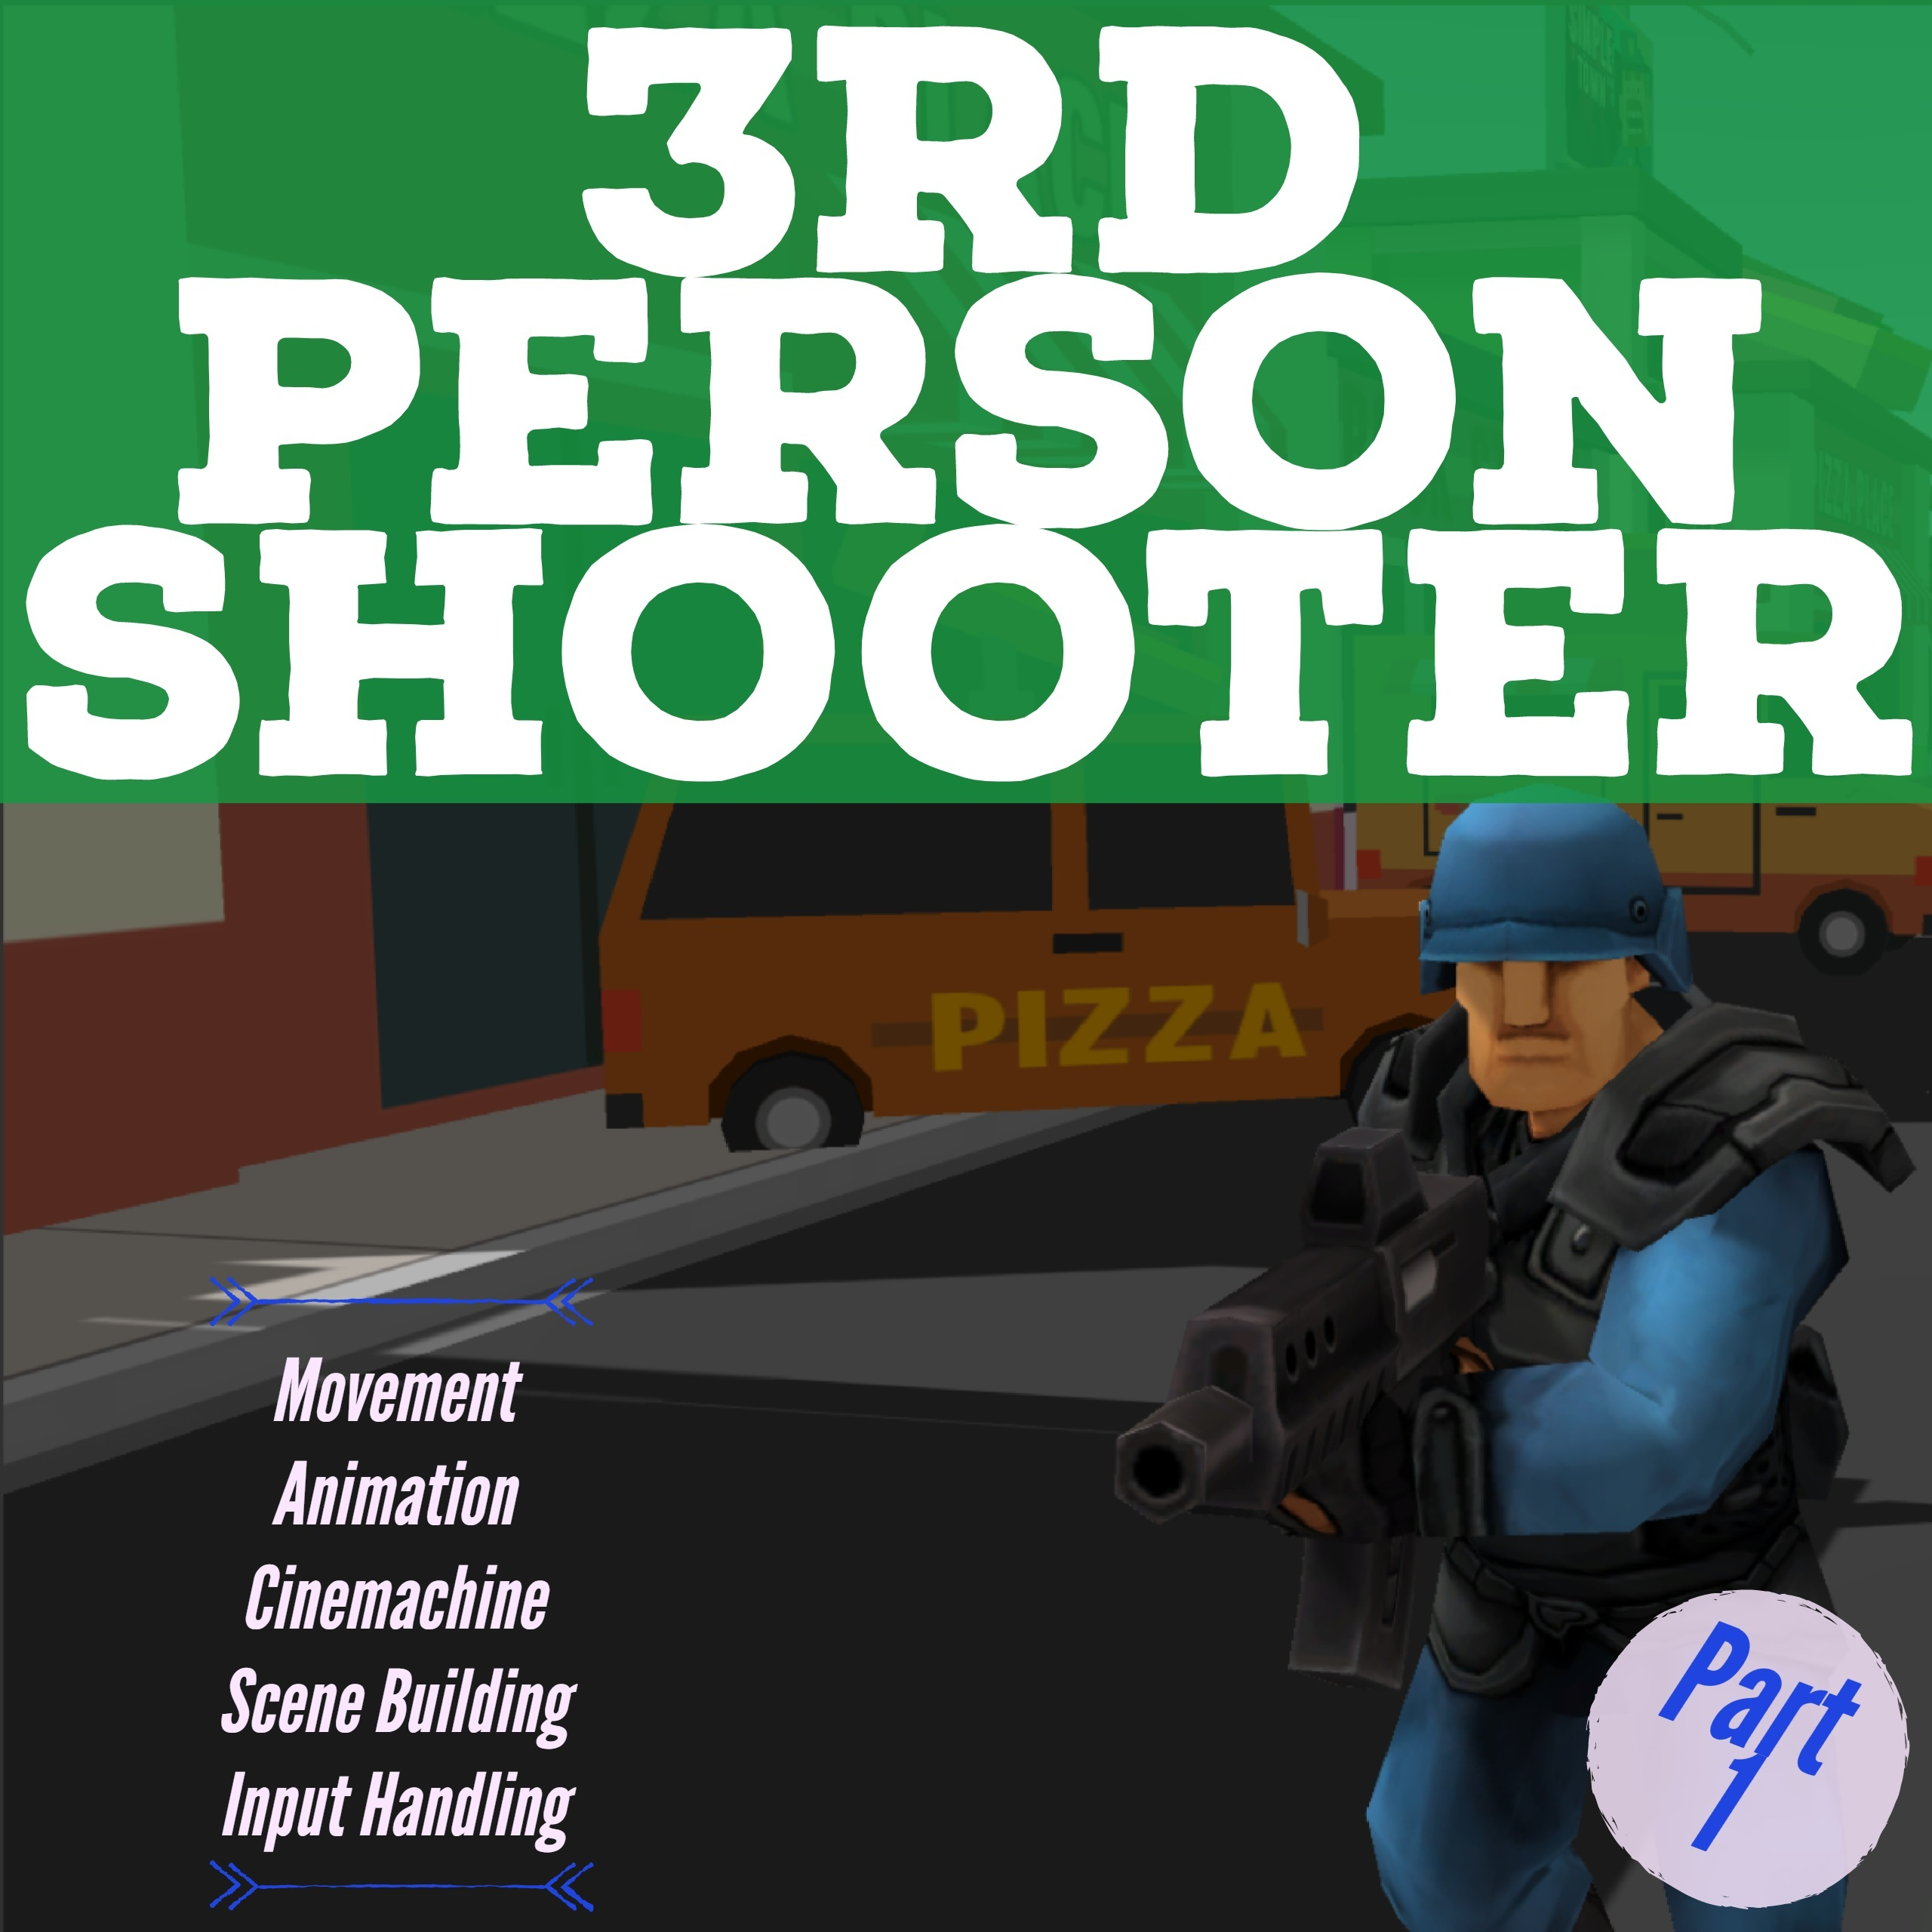 Build a 3rd person shooter in Unity - Part 1 - Unity3D College